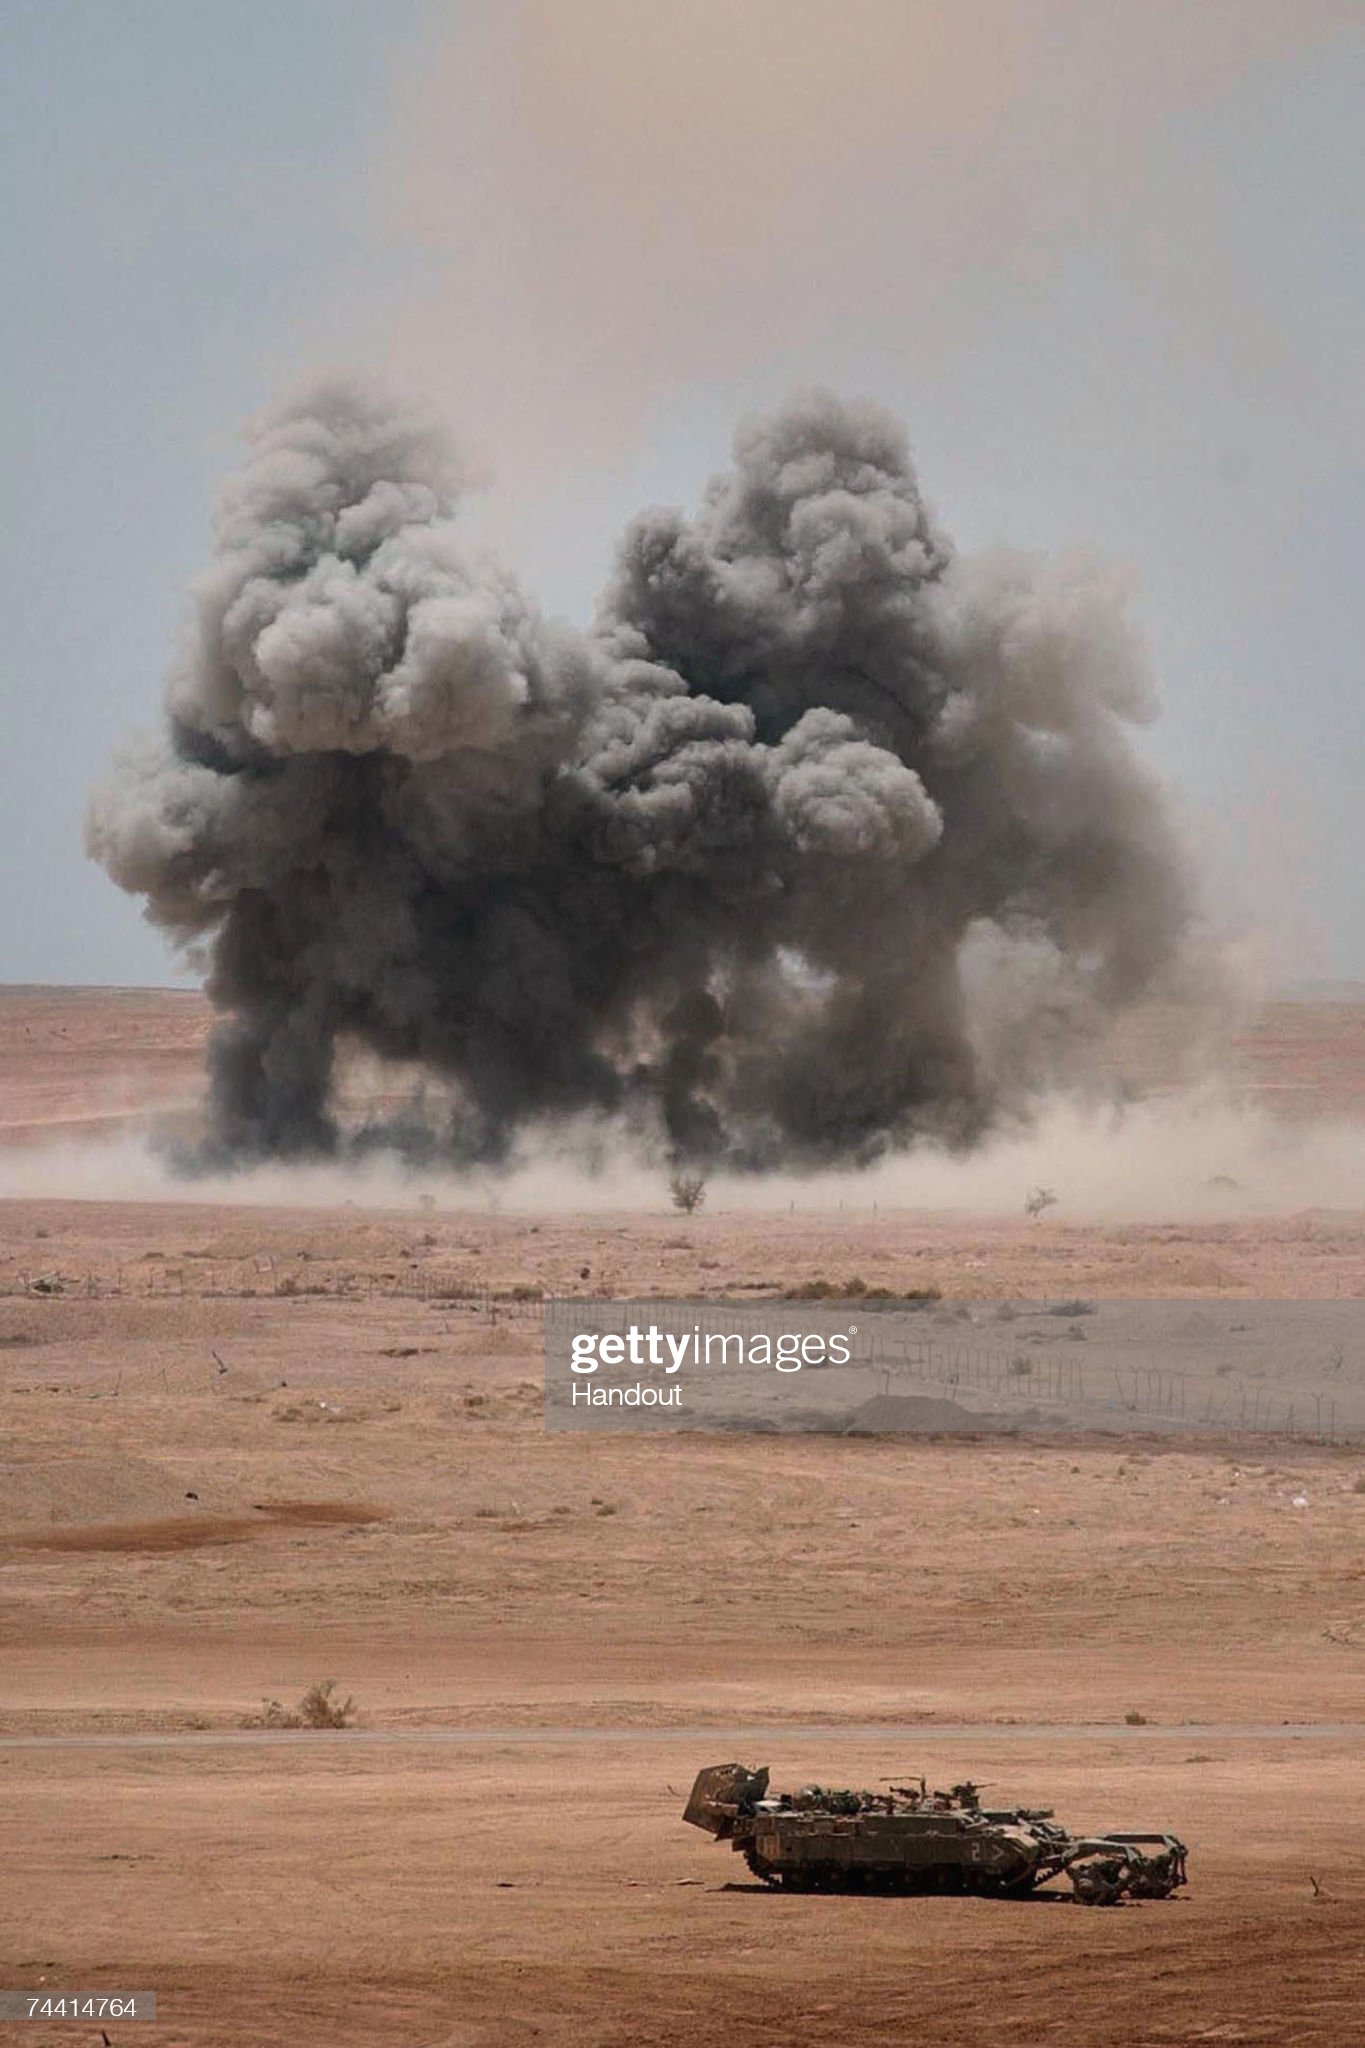 https://media.gettyimages.com/photos/in-this-handout-photo-distributed-by-the-israel-defense-forces-a-tank-picture-id74414764?s=2048x2048